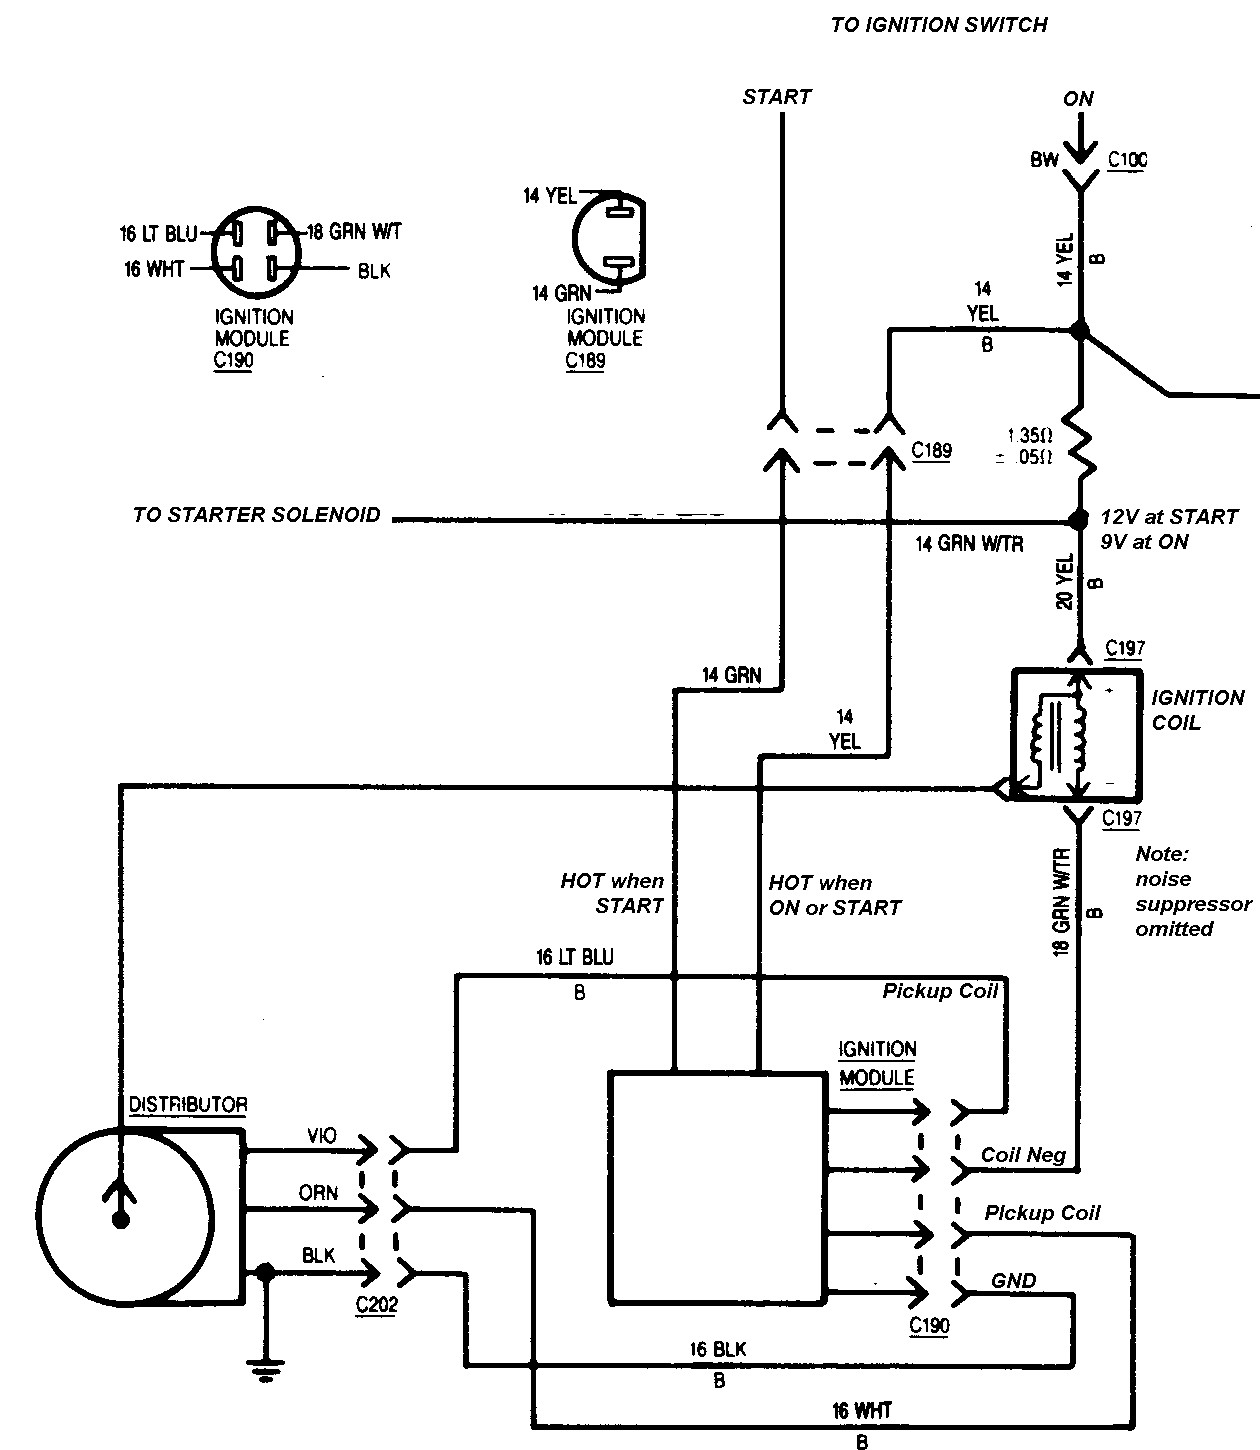 chevy 4 3 wiring harness wiring diagram diagram moreover 350 chevy engine likewise chevy fuel pump wiring [ 1260 x 1450 Pixel ]